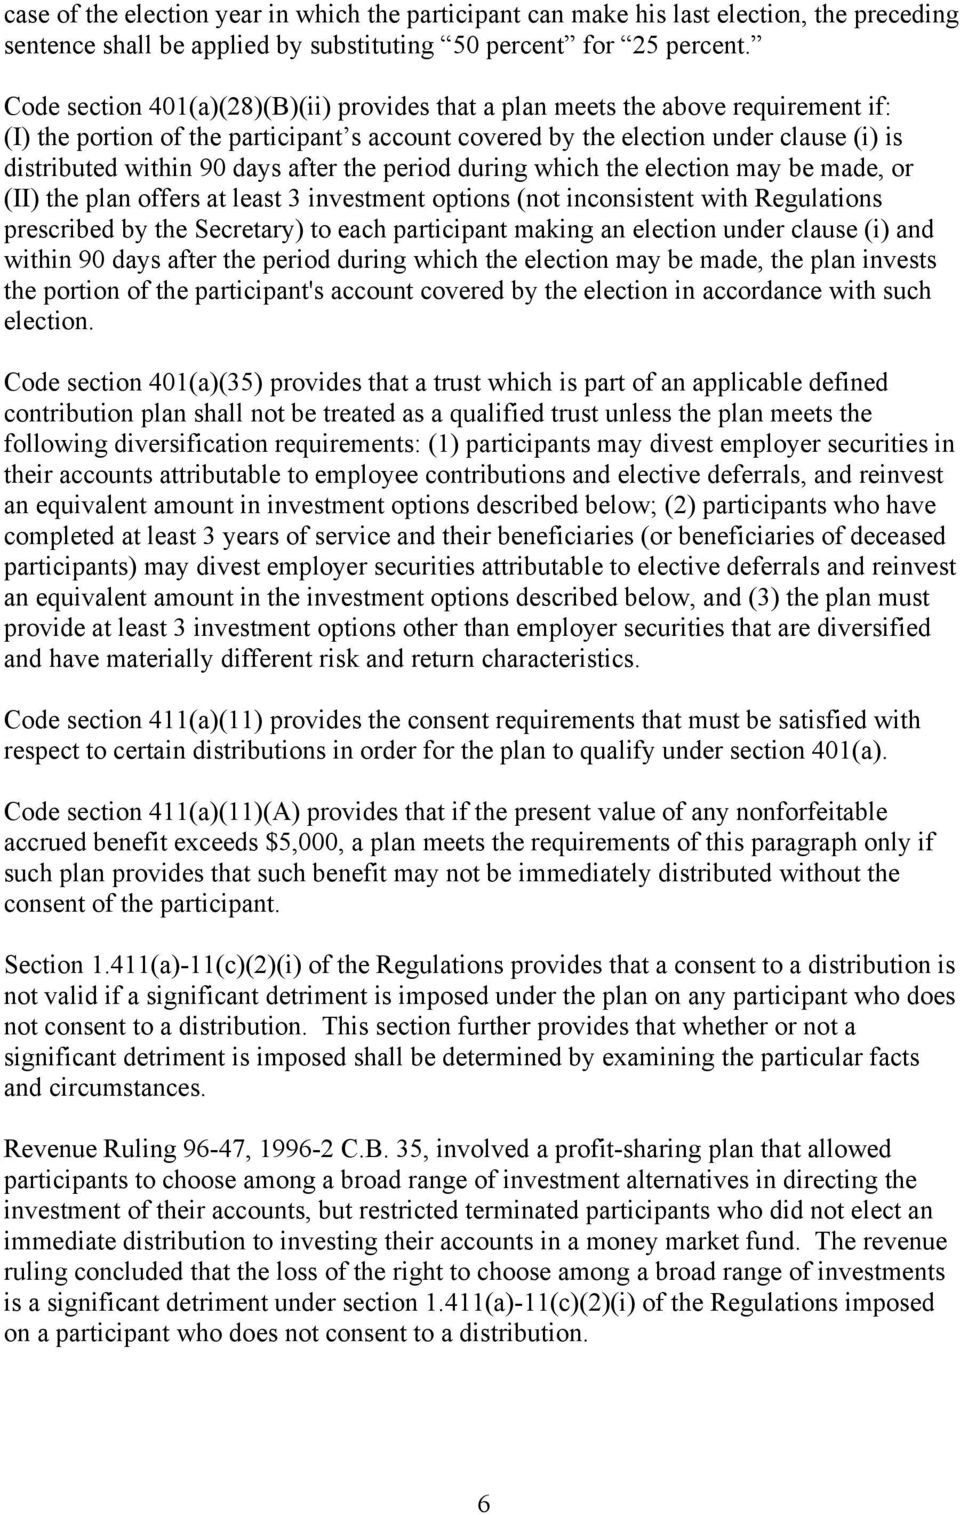 after the period during which the election may be made, or (II) the plan offers at least 3 investment options (not inconsistent with Regulations prescribed by the Secretary) to each participant